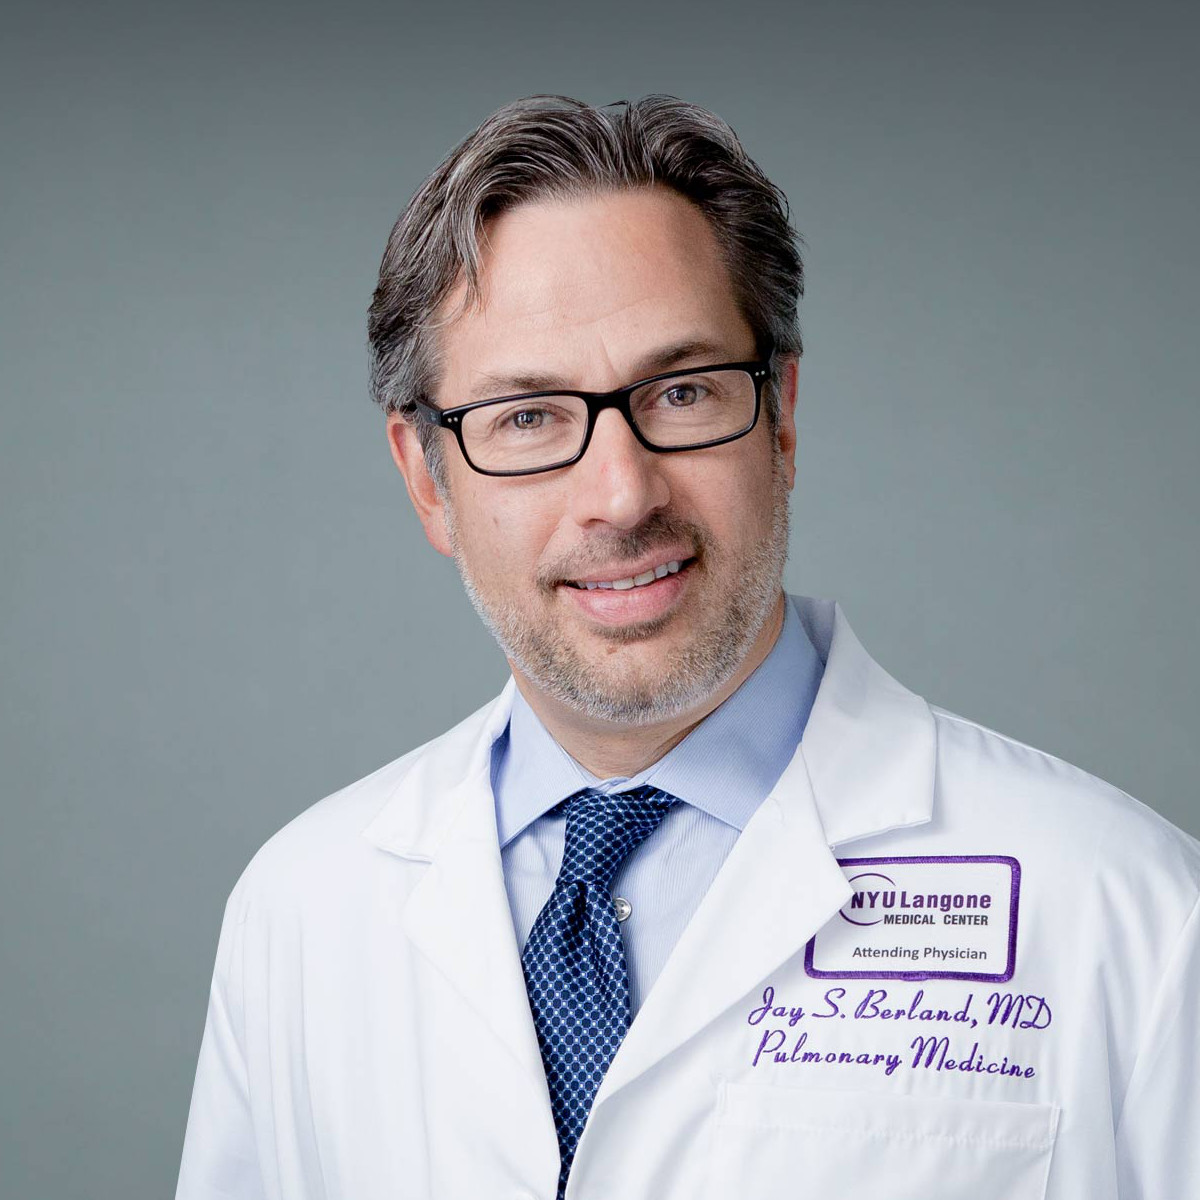 Jay S. Berland,MD. Pulmonary Medicine, Sleep Medicine